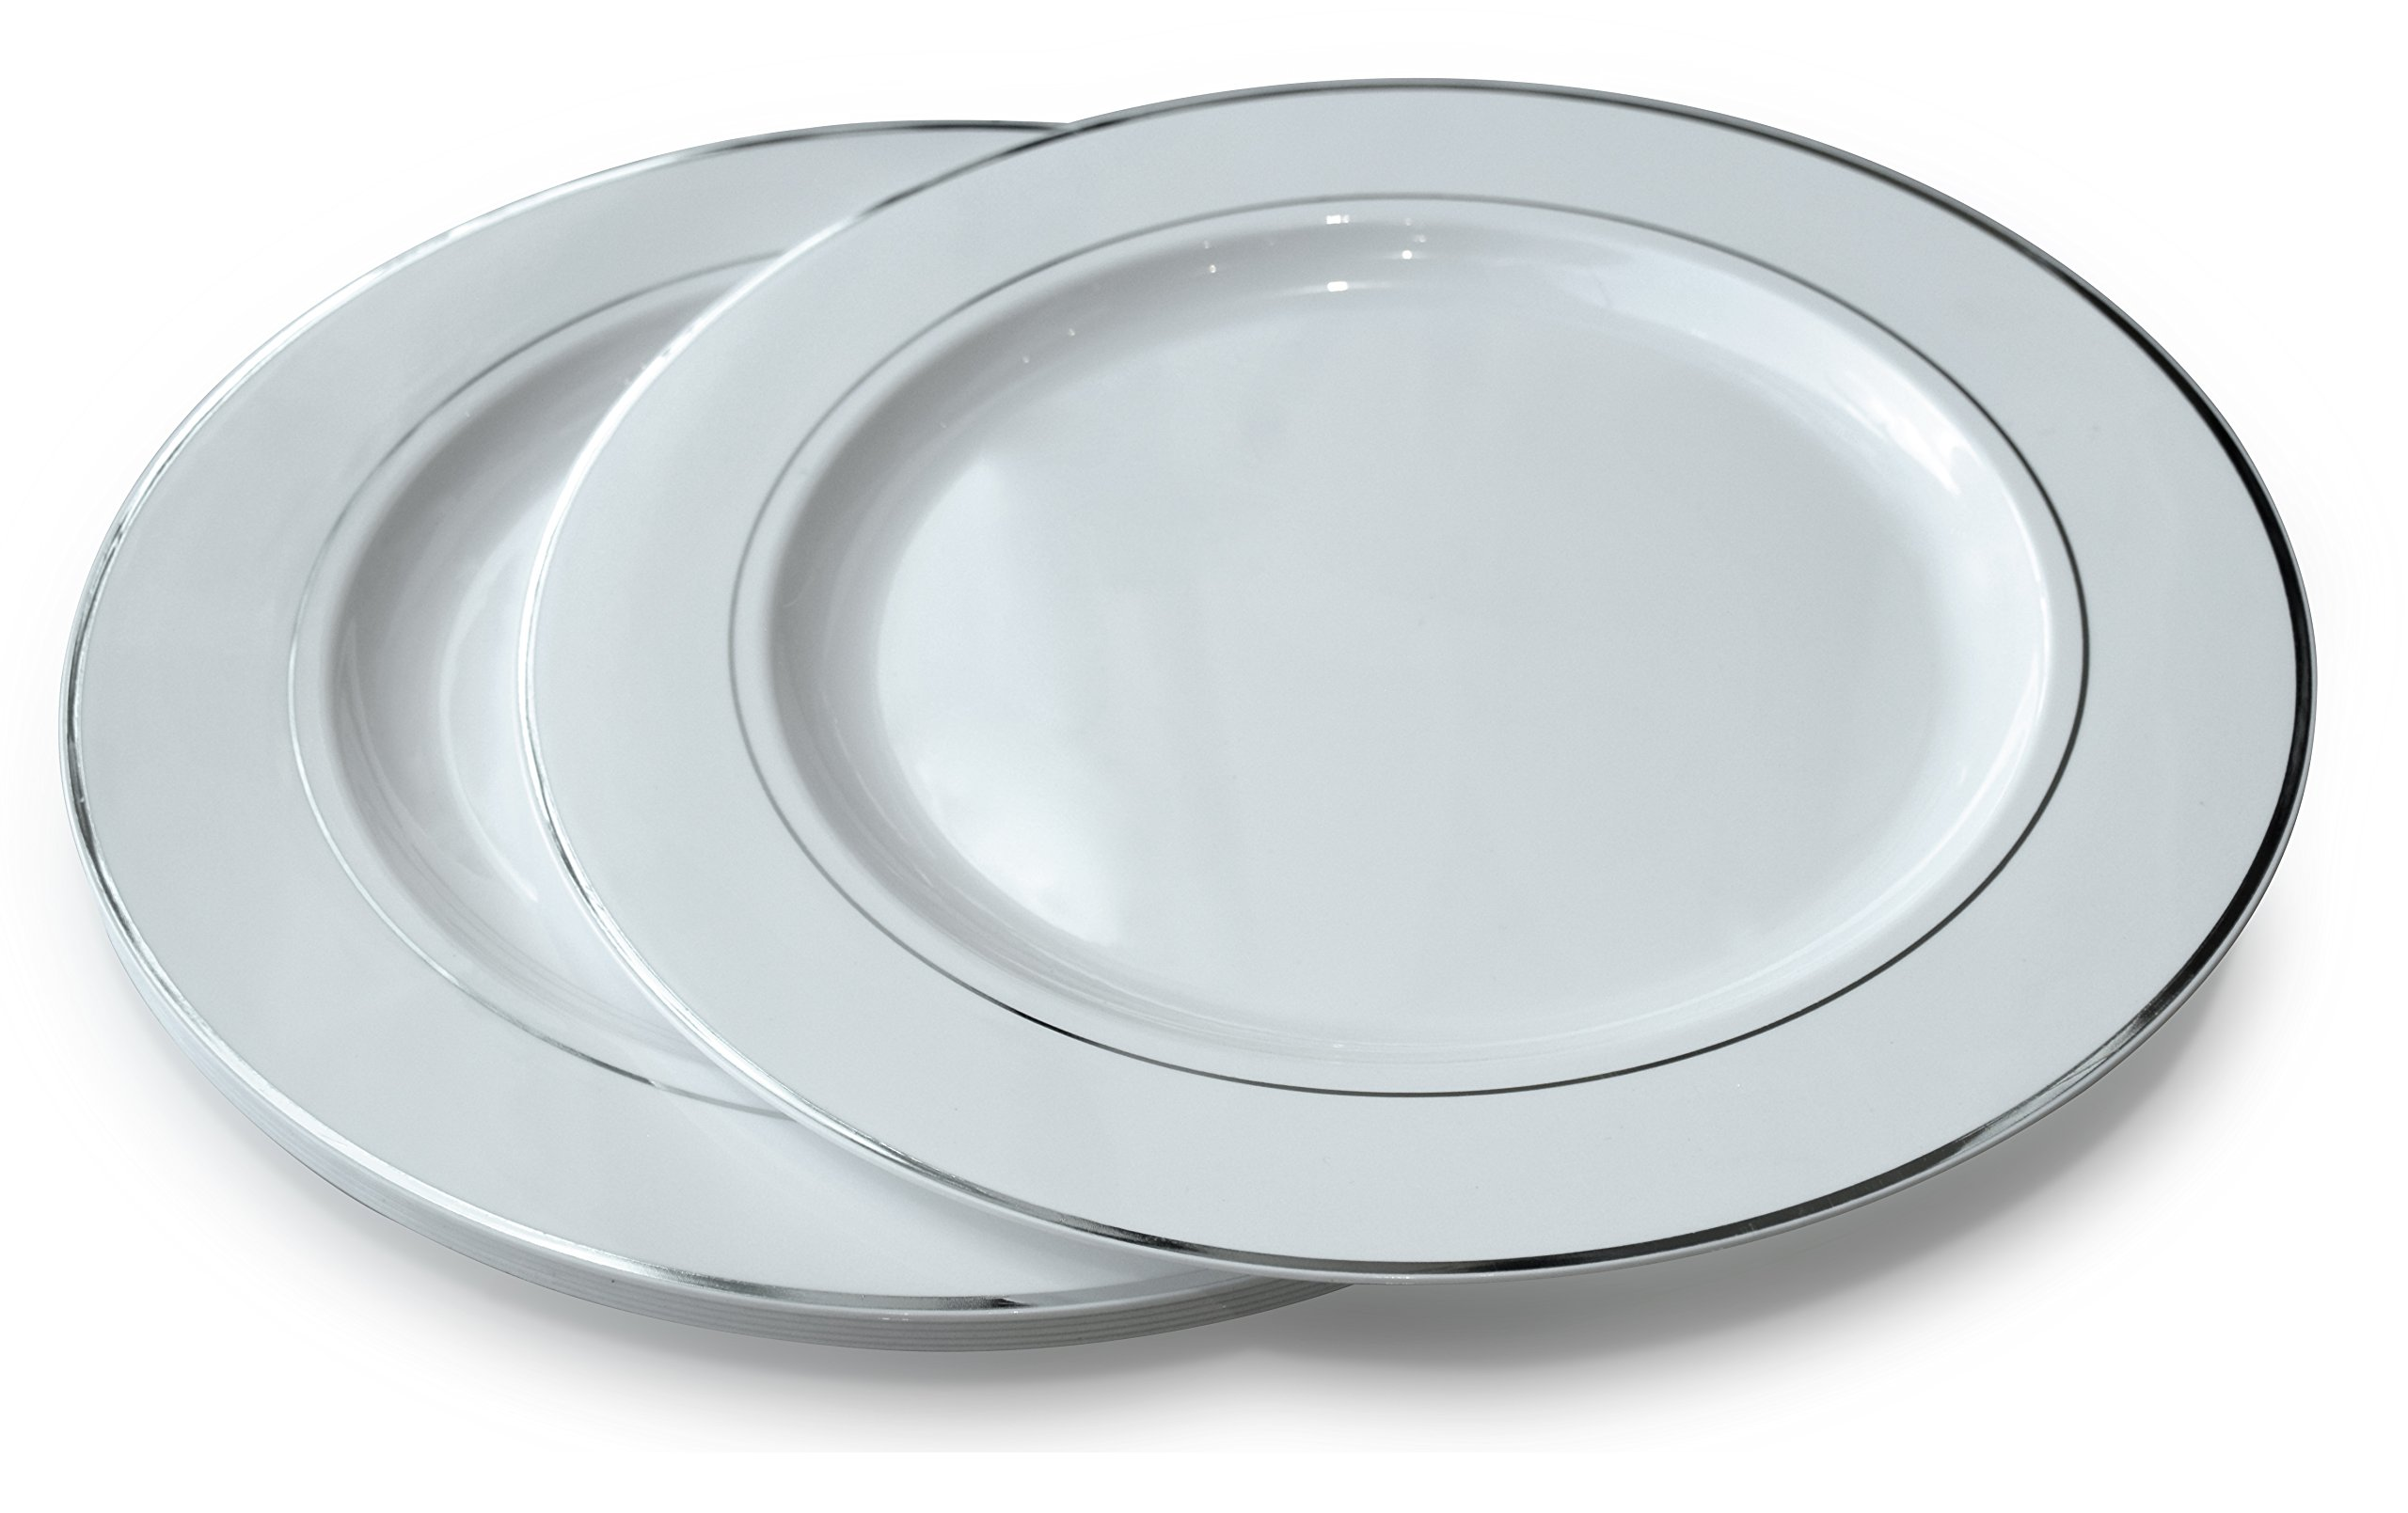 '' OCCASIONS'' Wedding Party 12'' Disposable Plastic Charger Plates/Chargers (120 pcs, White w/Silver Rim)